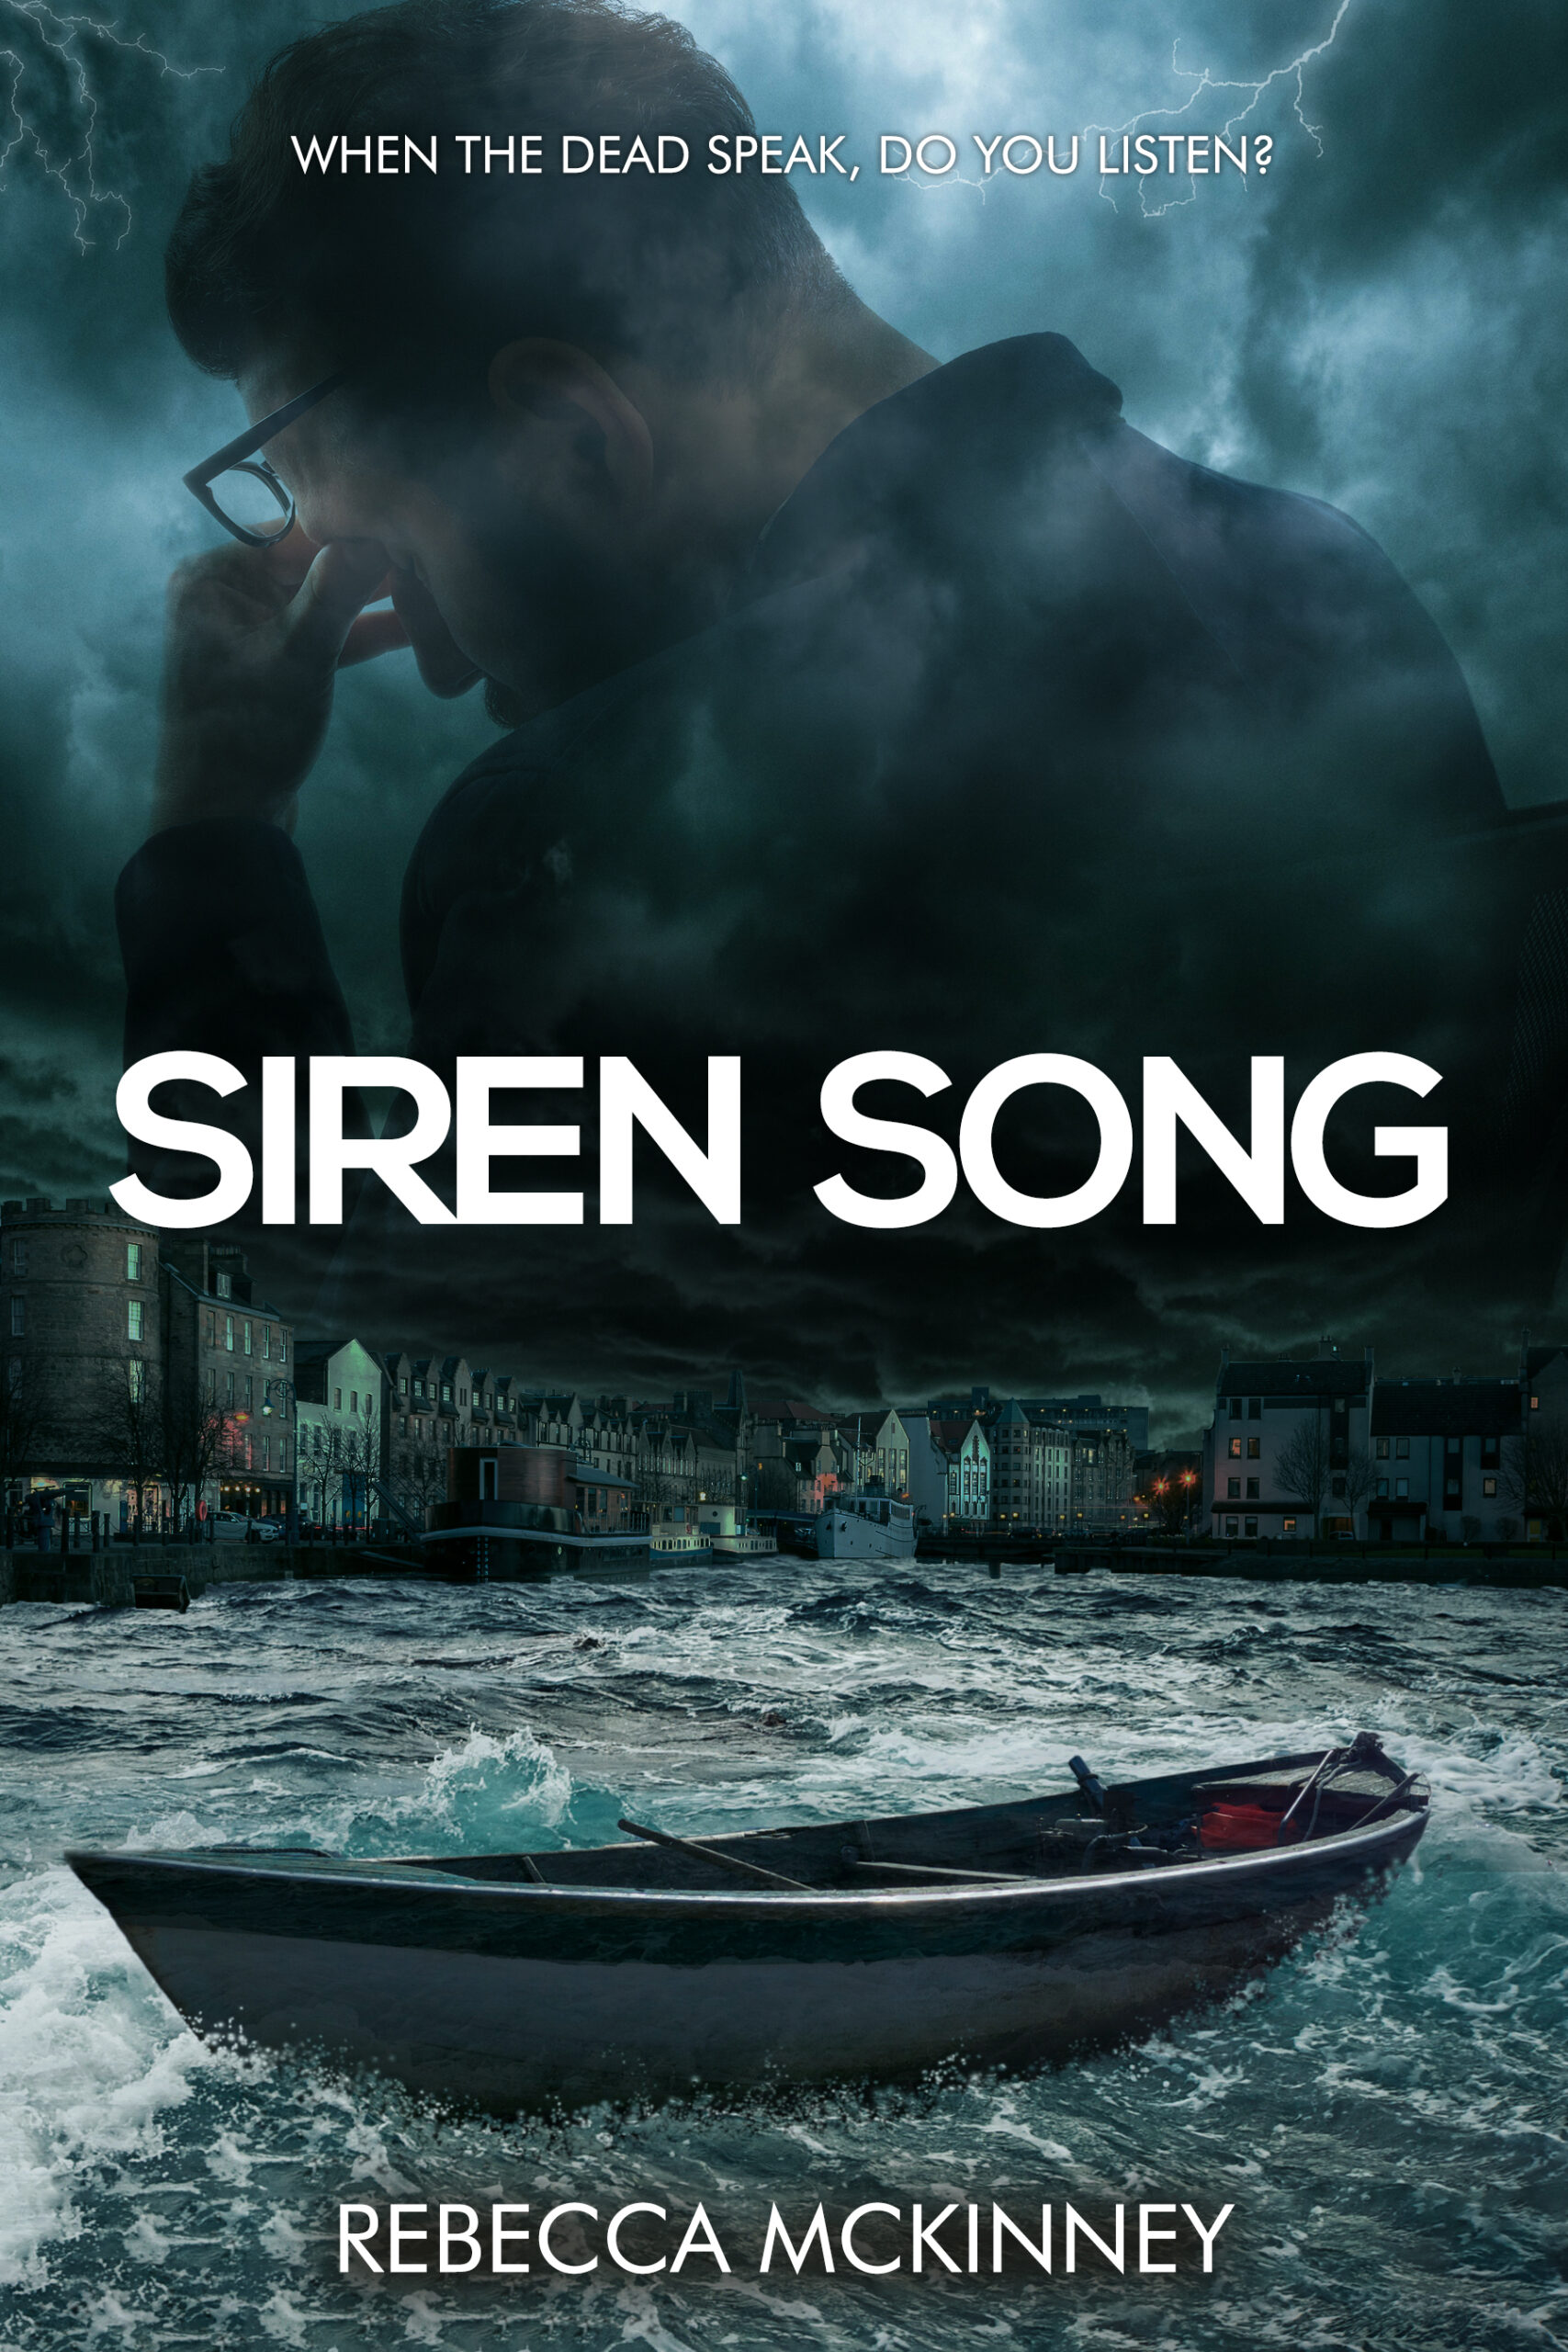 Siren-Song-Thriller-scifi-cover-design